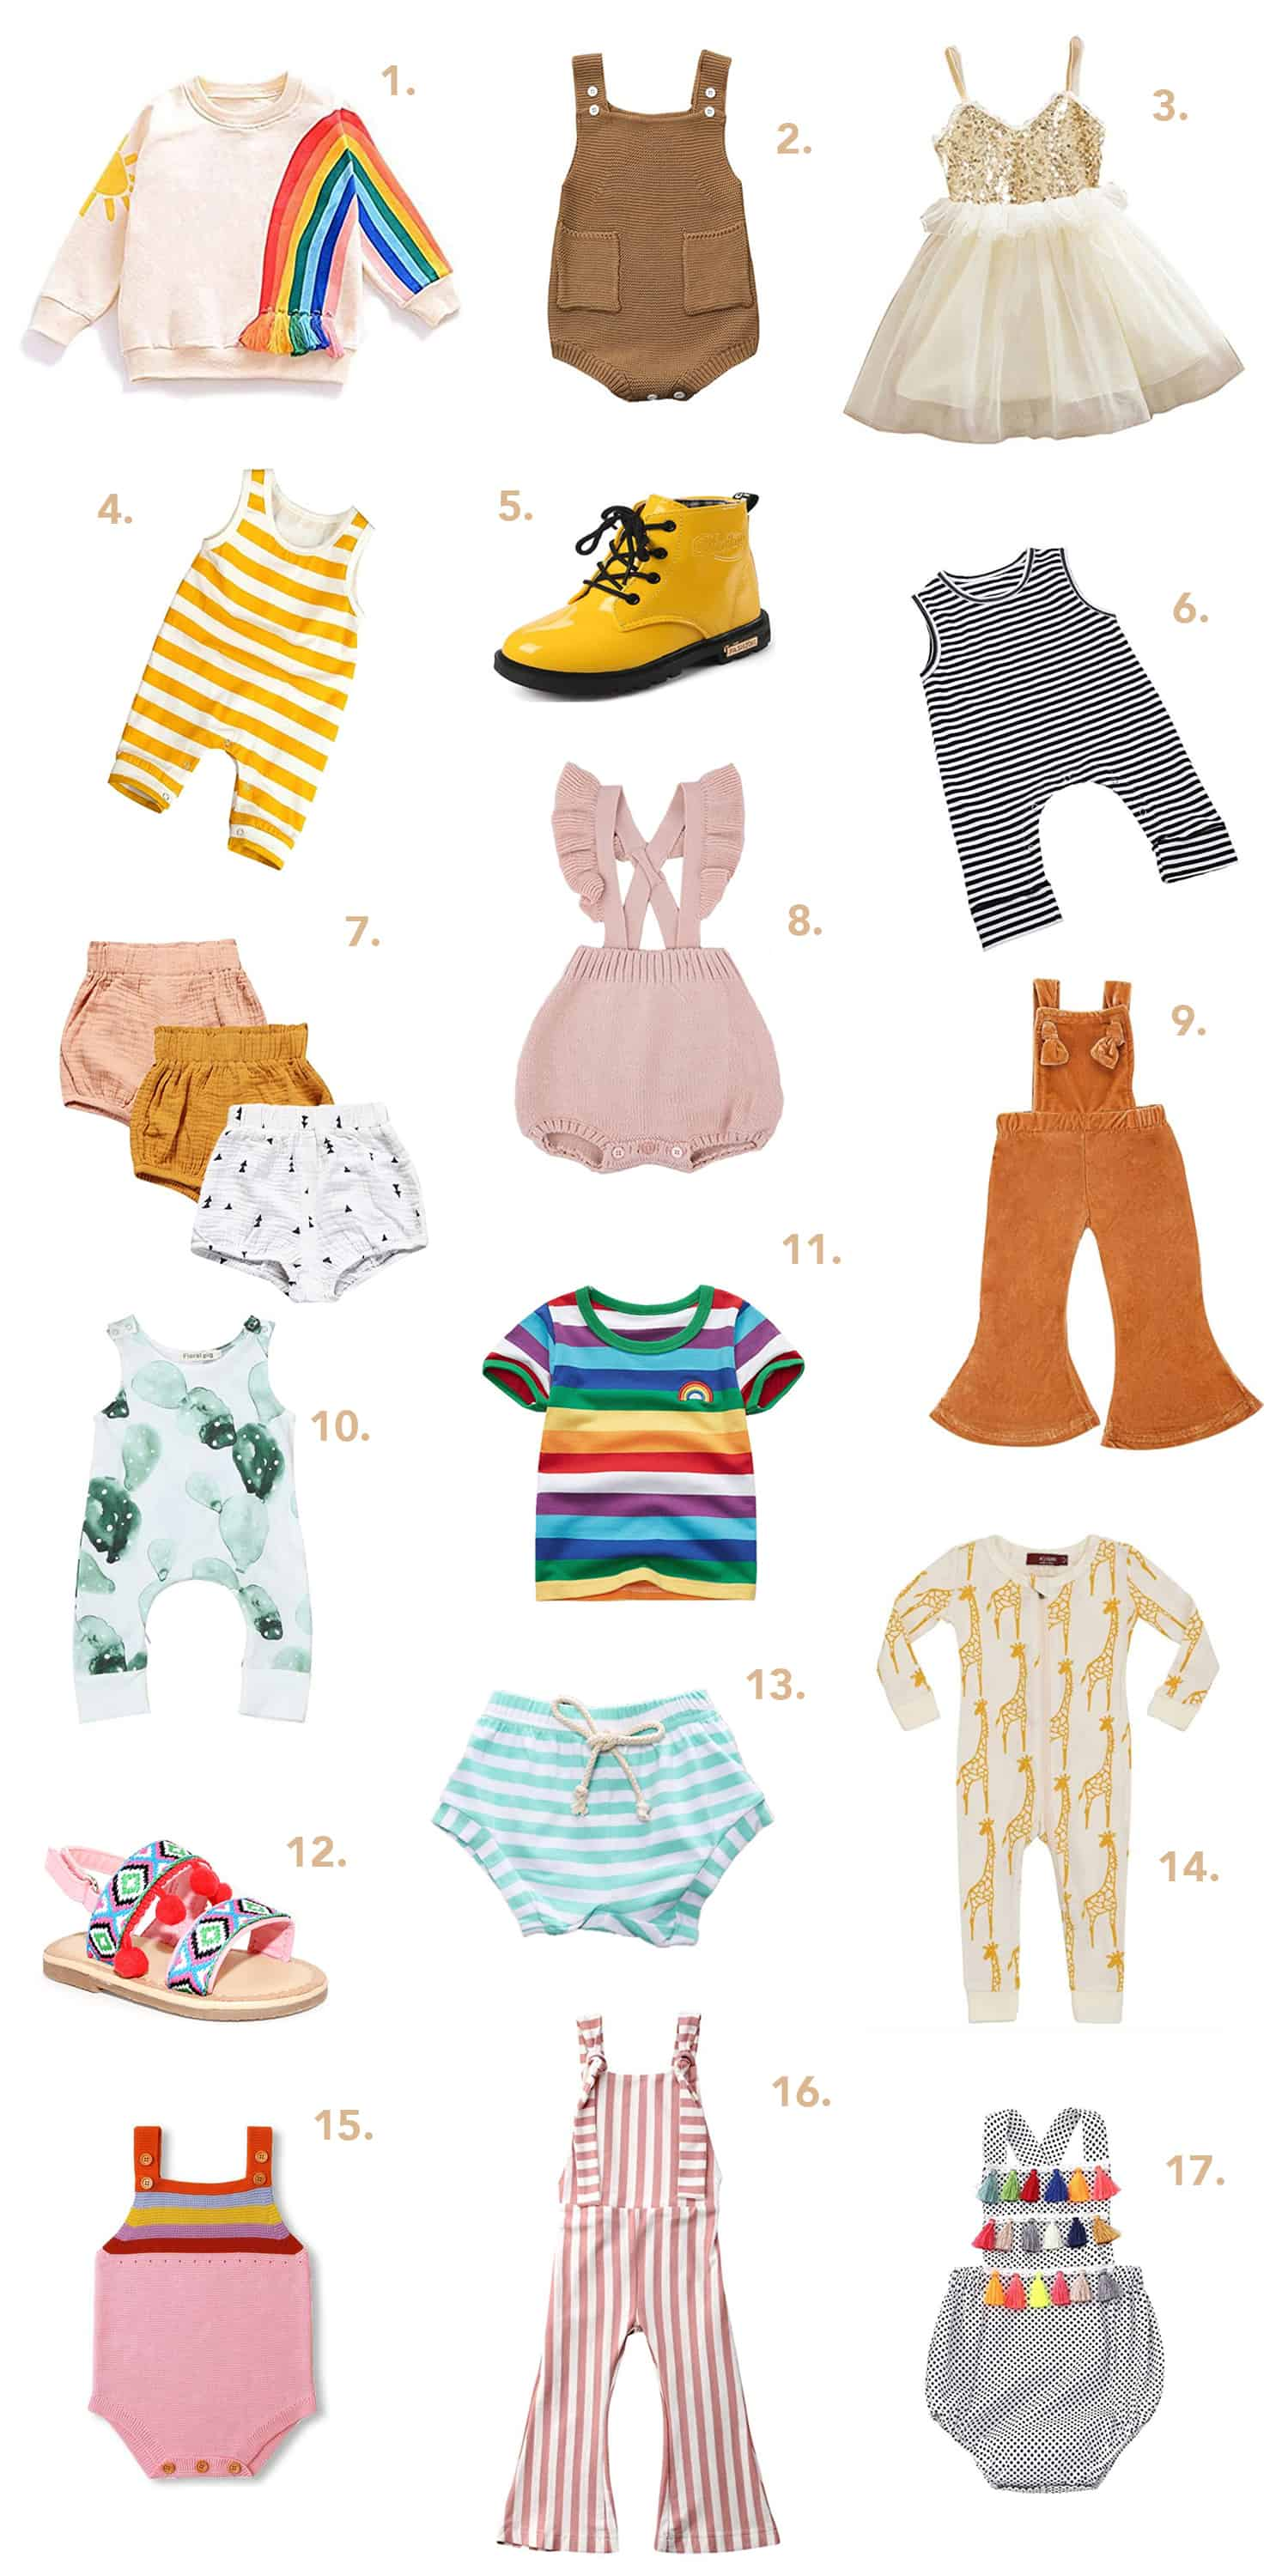 Our Favorite Kids Clothes On Amazon!